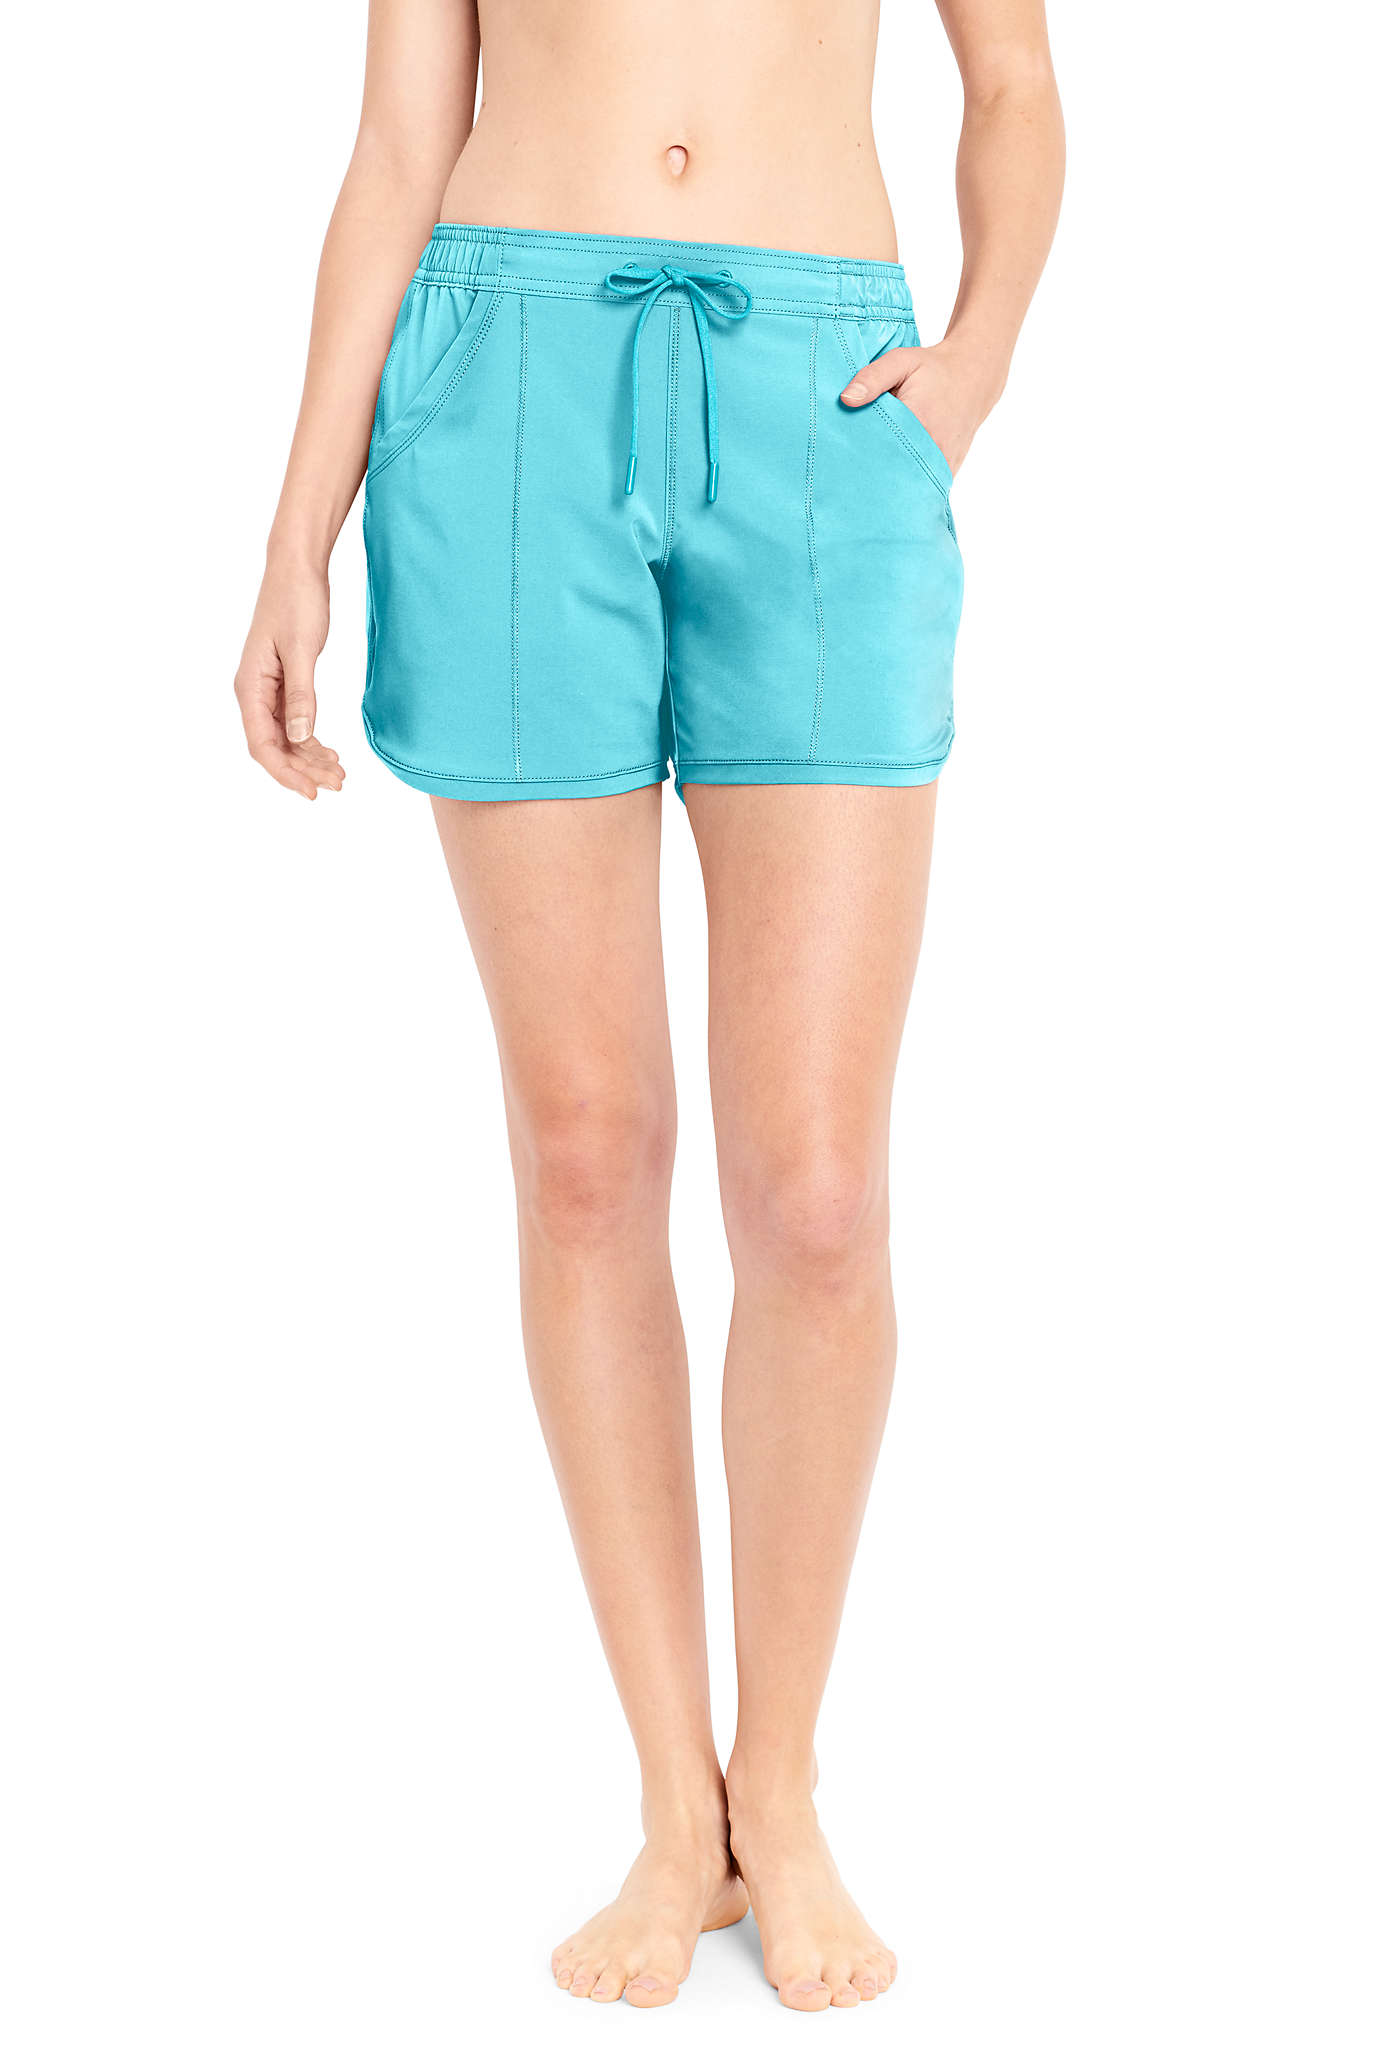 "Women's 3"" Tummy Control Modest Swim Shorts"